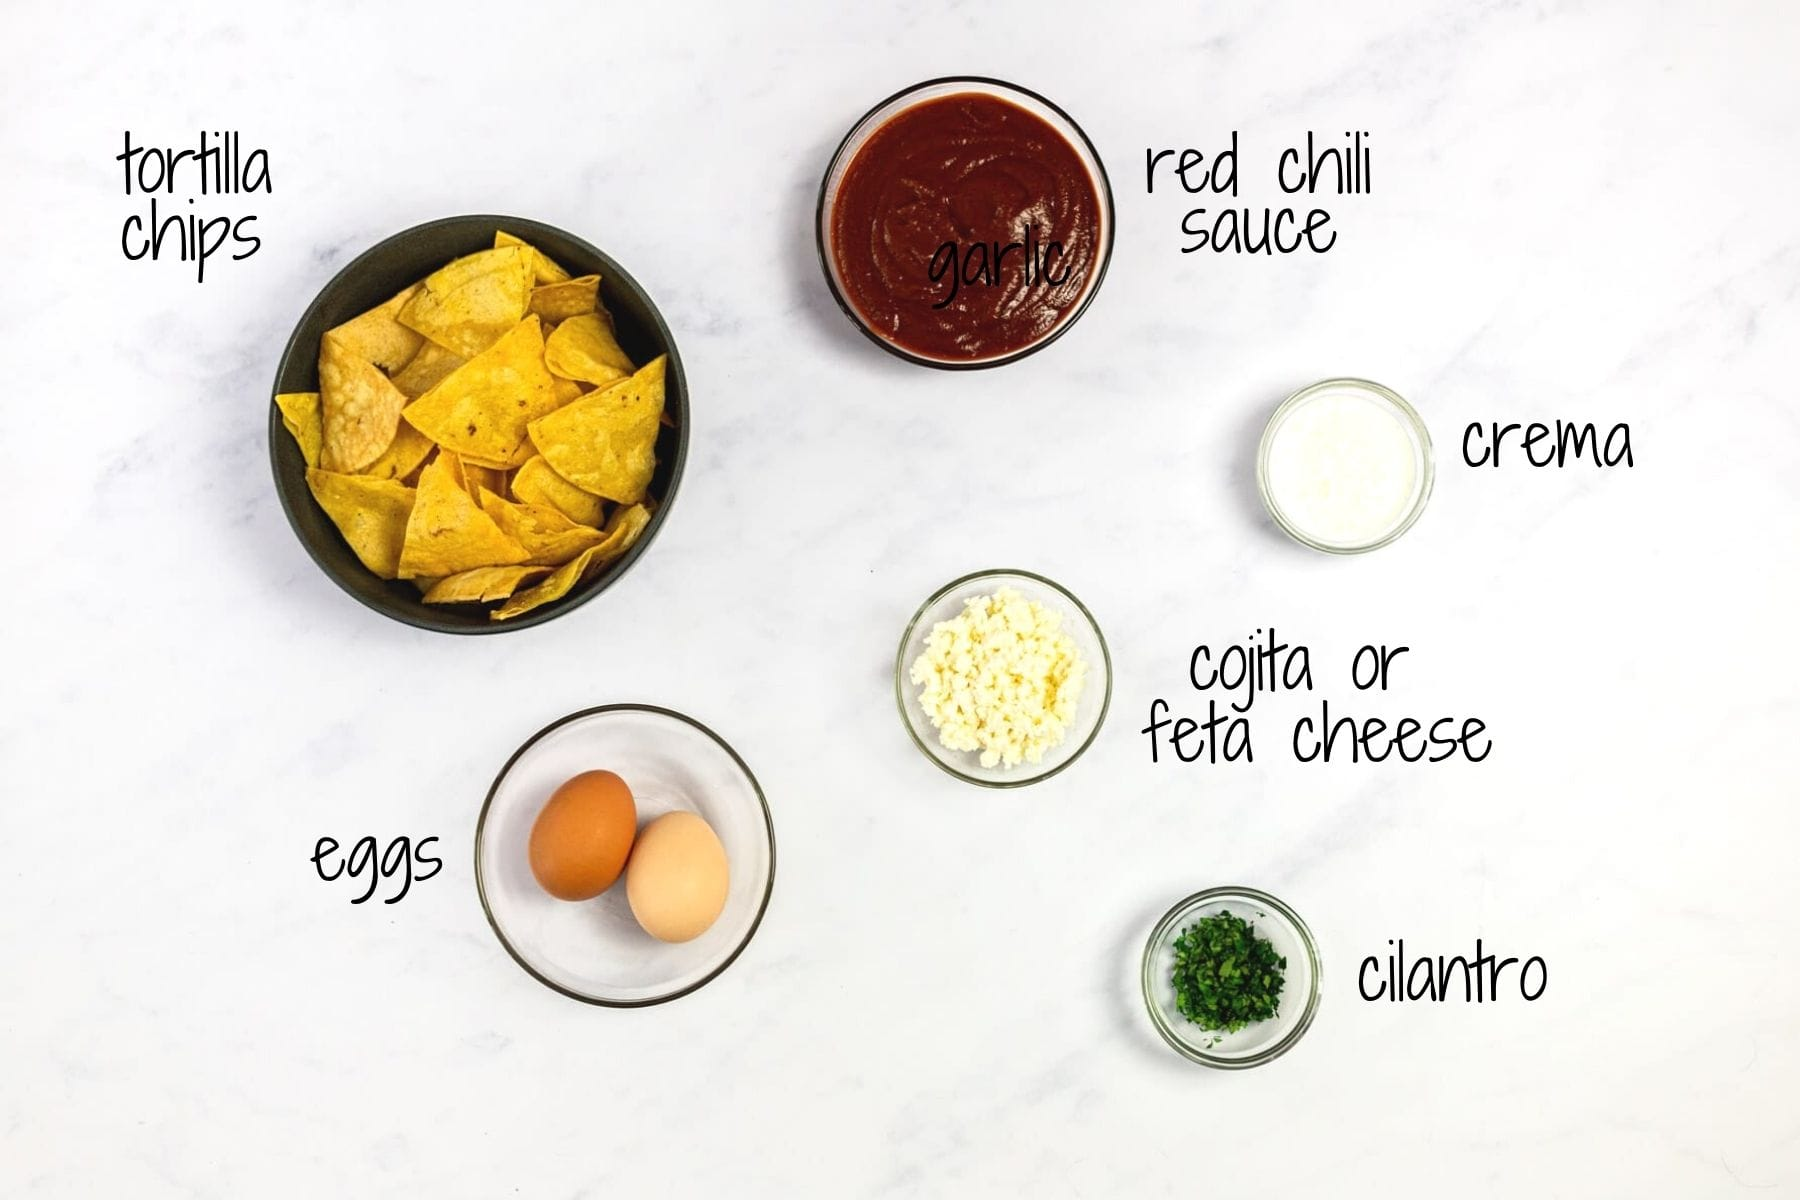 Ingredients for red chilaquiles with text labels.